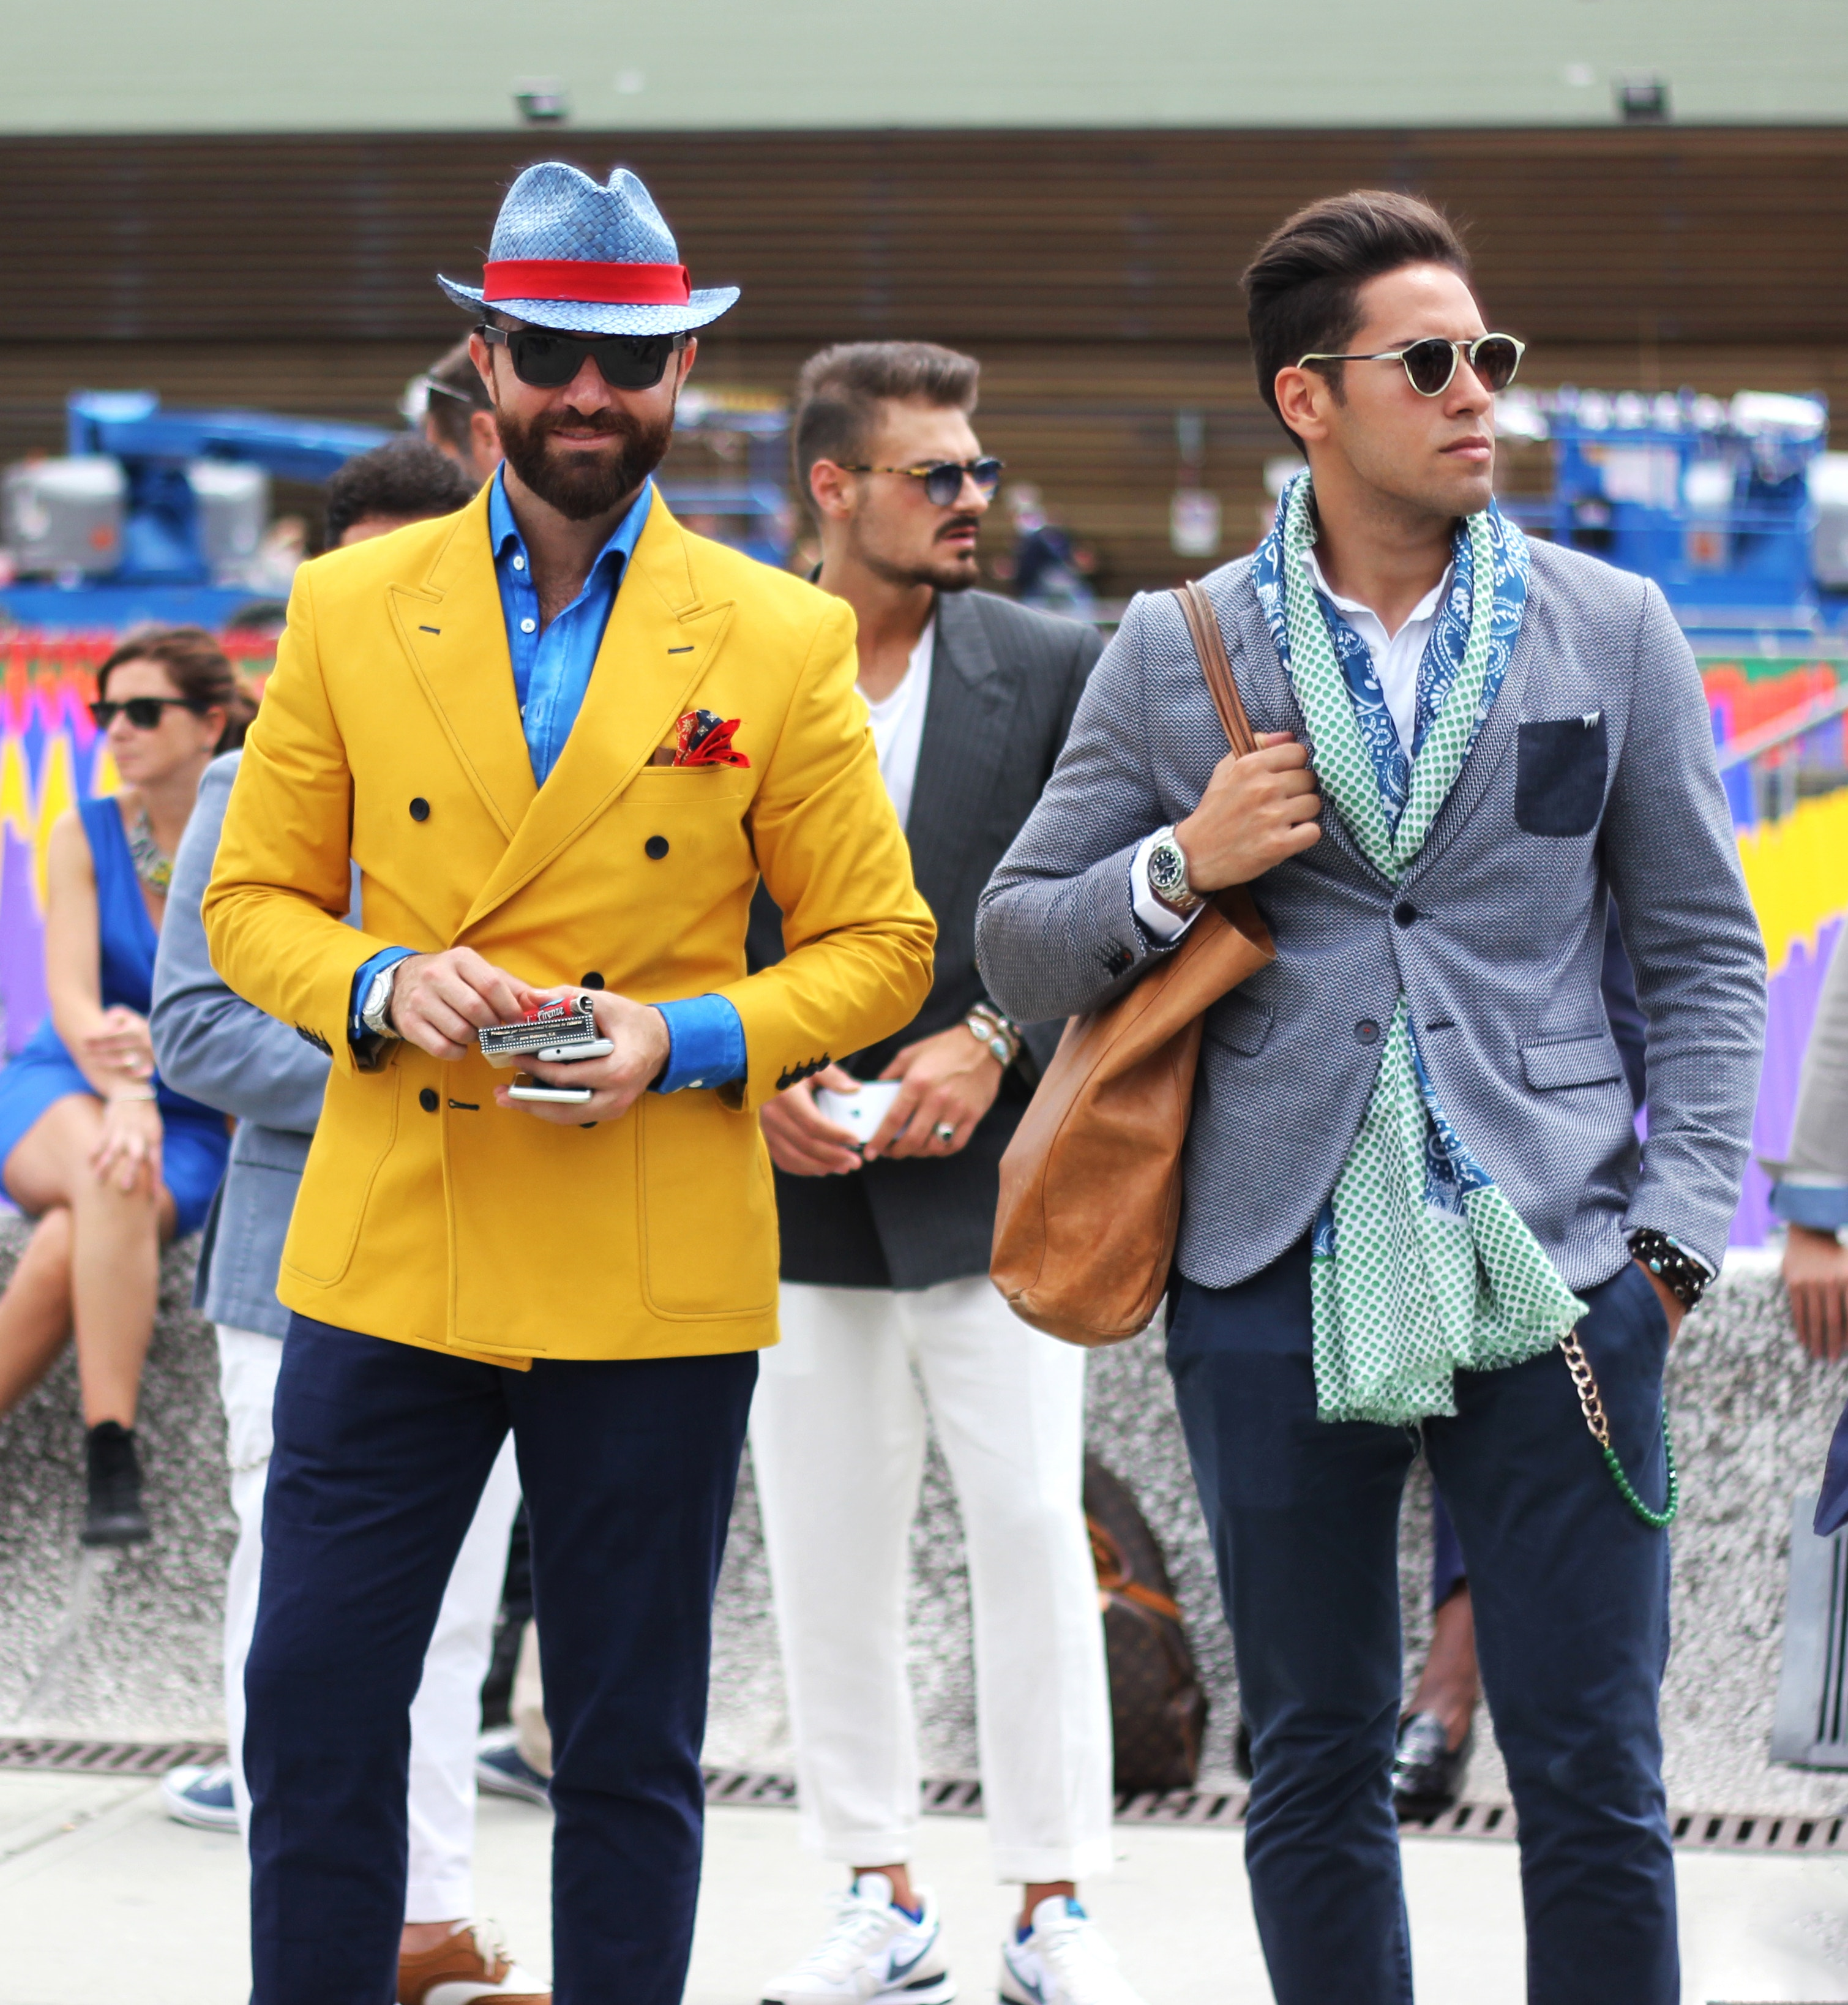 men's business colors for casual events